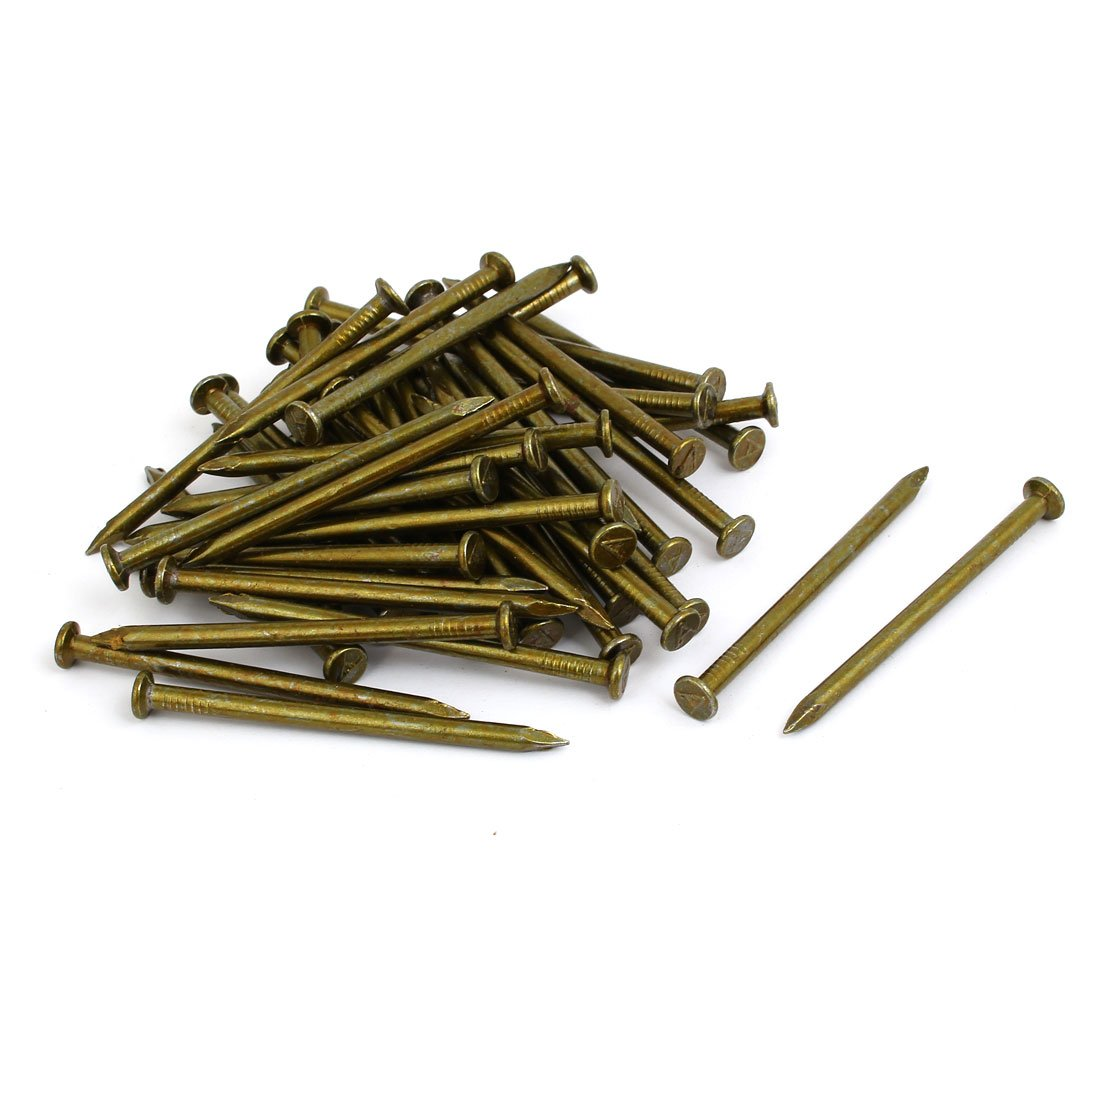 uxcell Fiber Concrete Cement Wall Steel Point Tip Wire Nails 4mmx70mm 100PCS